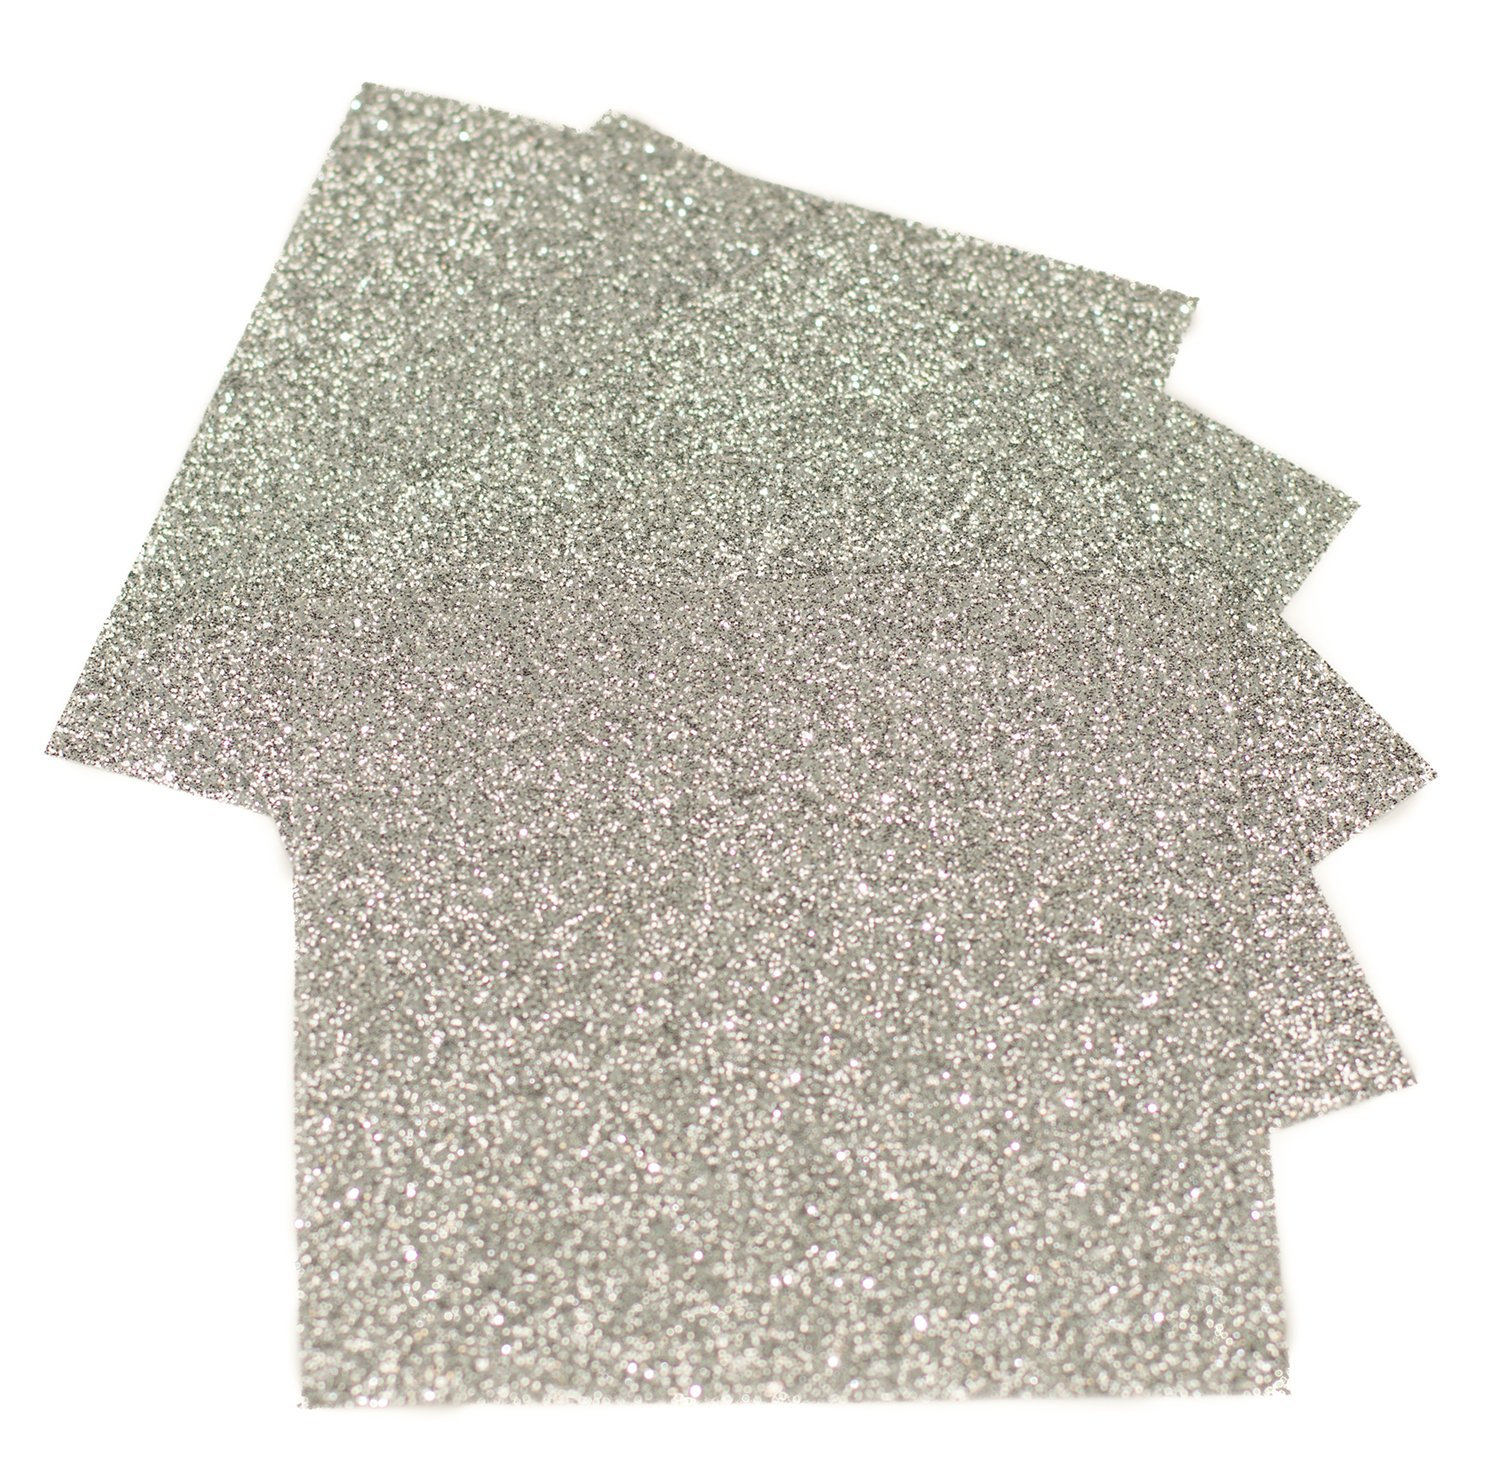 Expressions Vinyl - Silver - 9in. x 12in. 5-pack Siser Glitter Iron-on Heat Transfer Vinyl Sheets